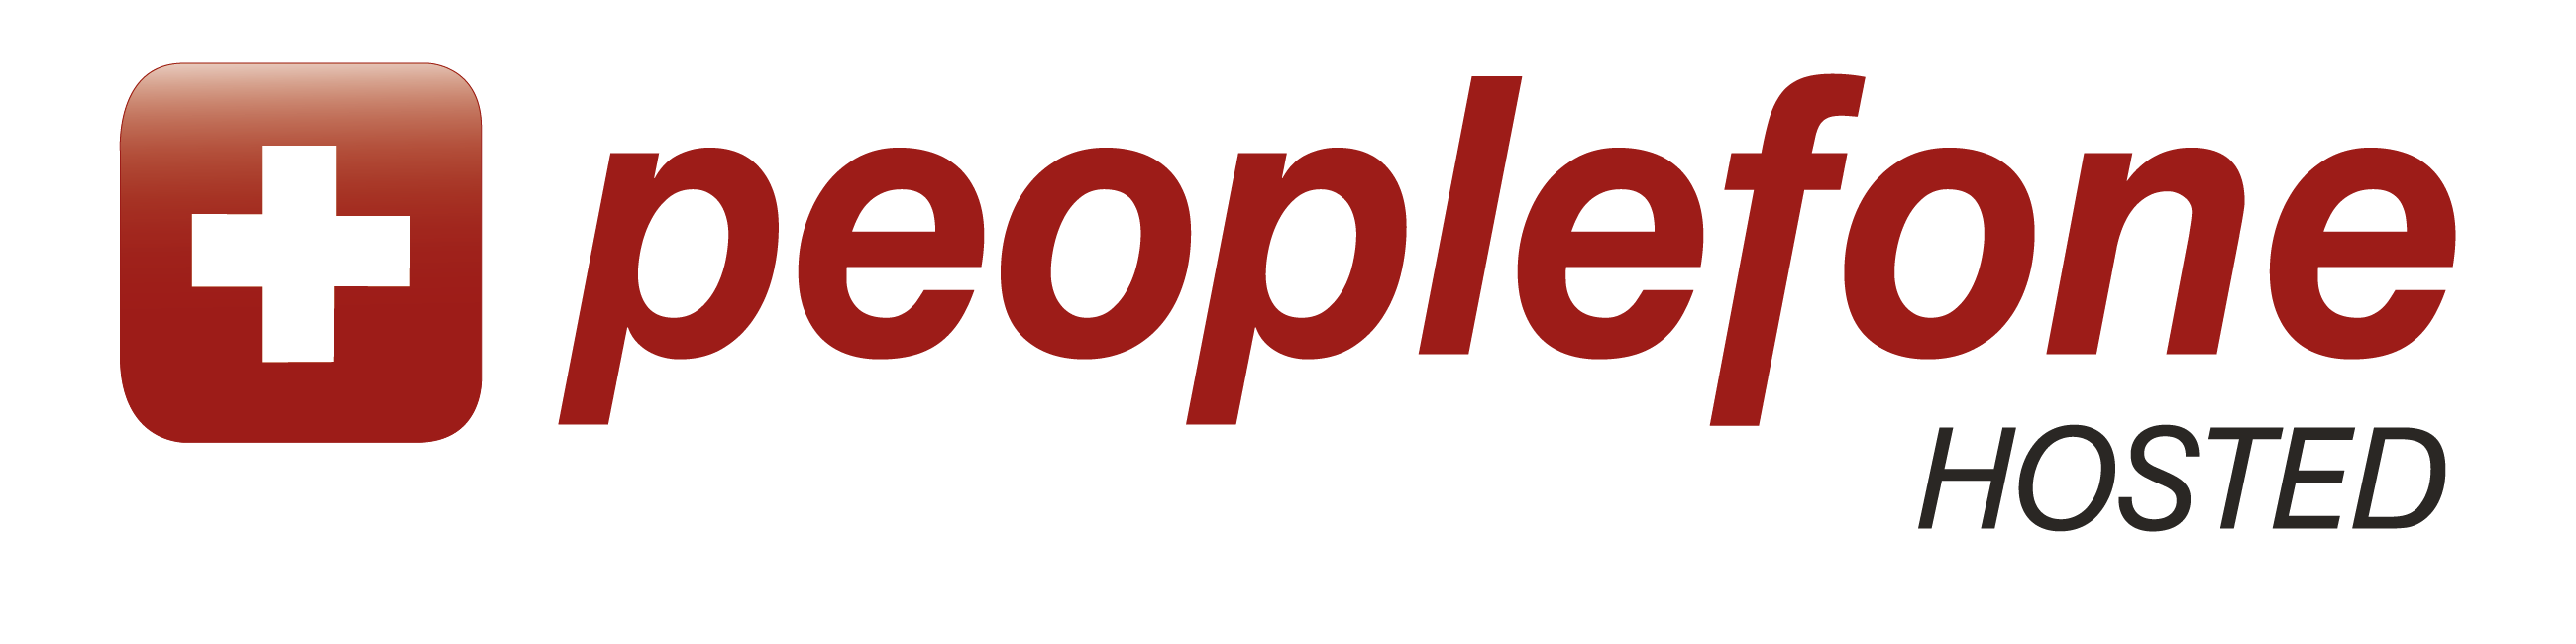 peoplefone HOSTED